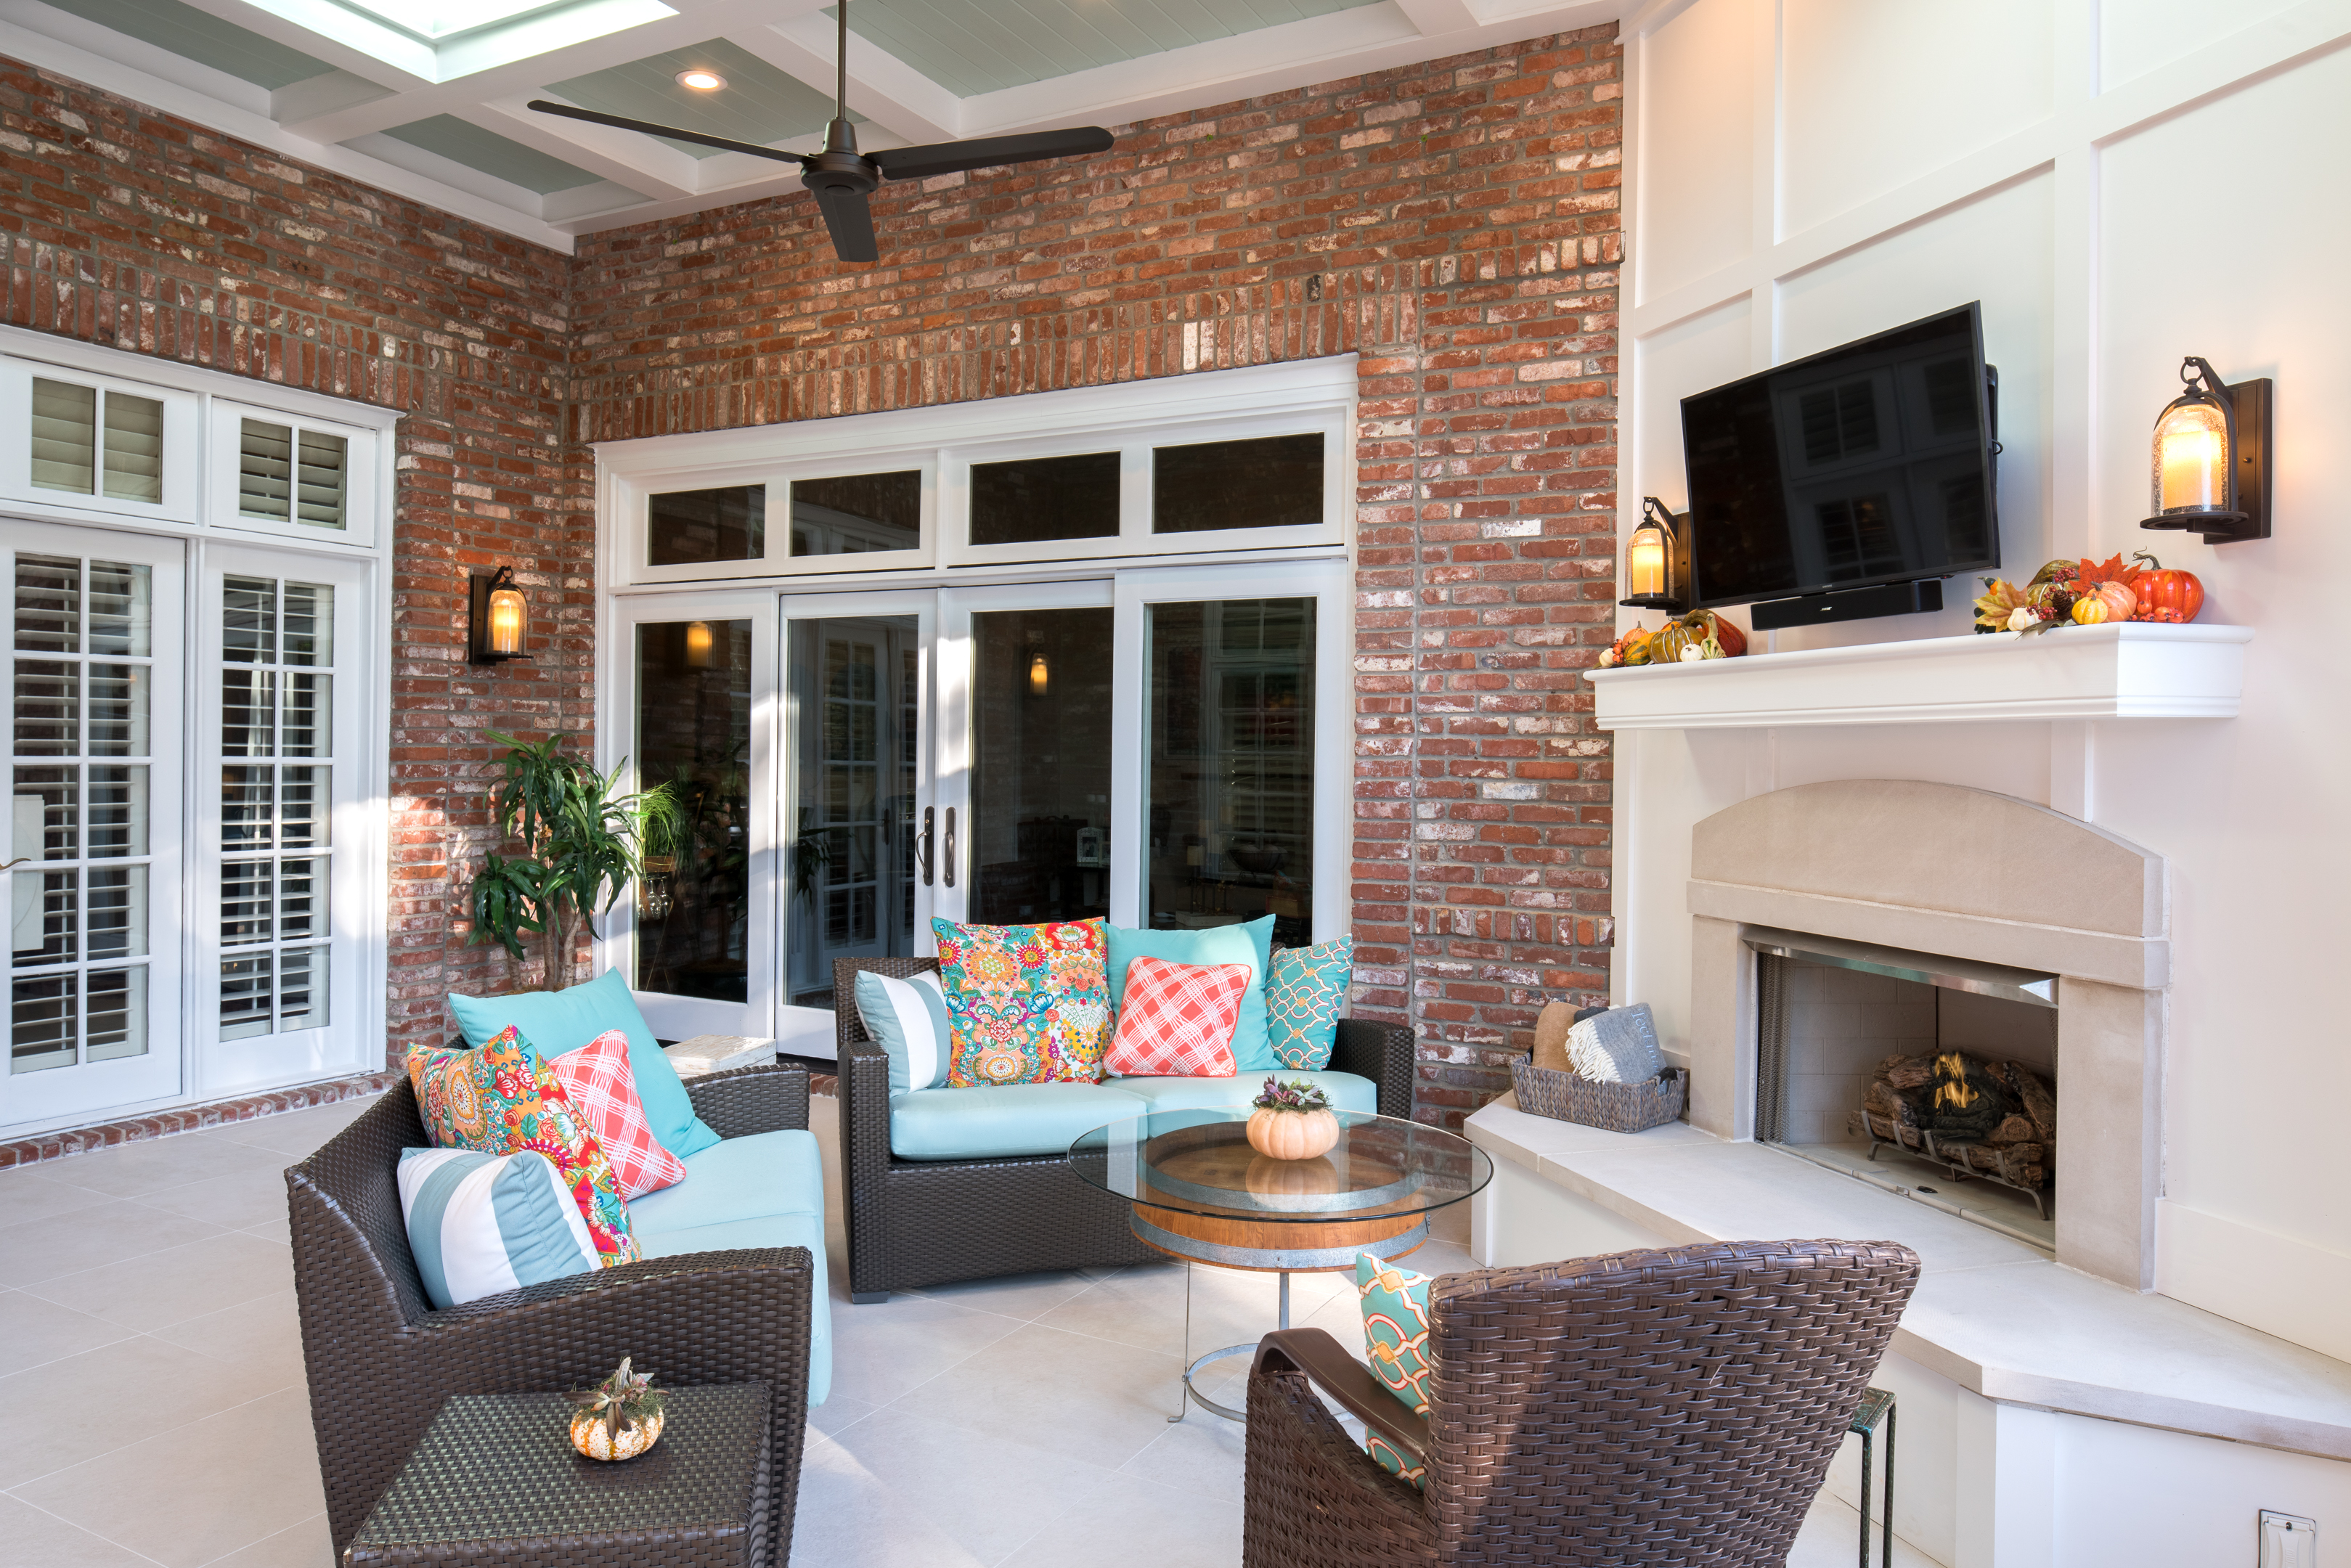 space and the expansion limestone pool to wood a porch aesthetic case column house store with simple for cut hearth design whonphoto caps complementary fireplace indy finish